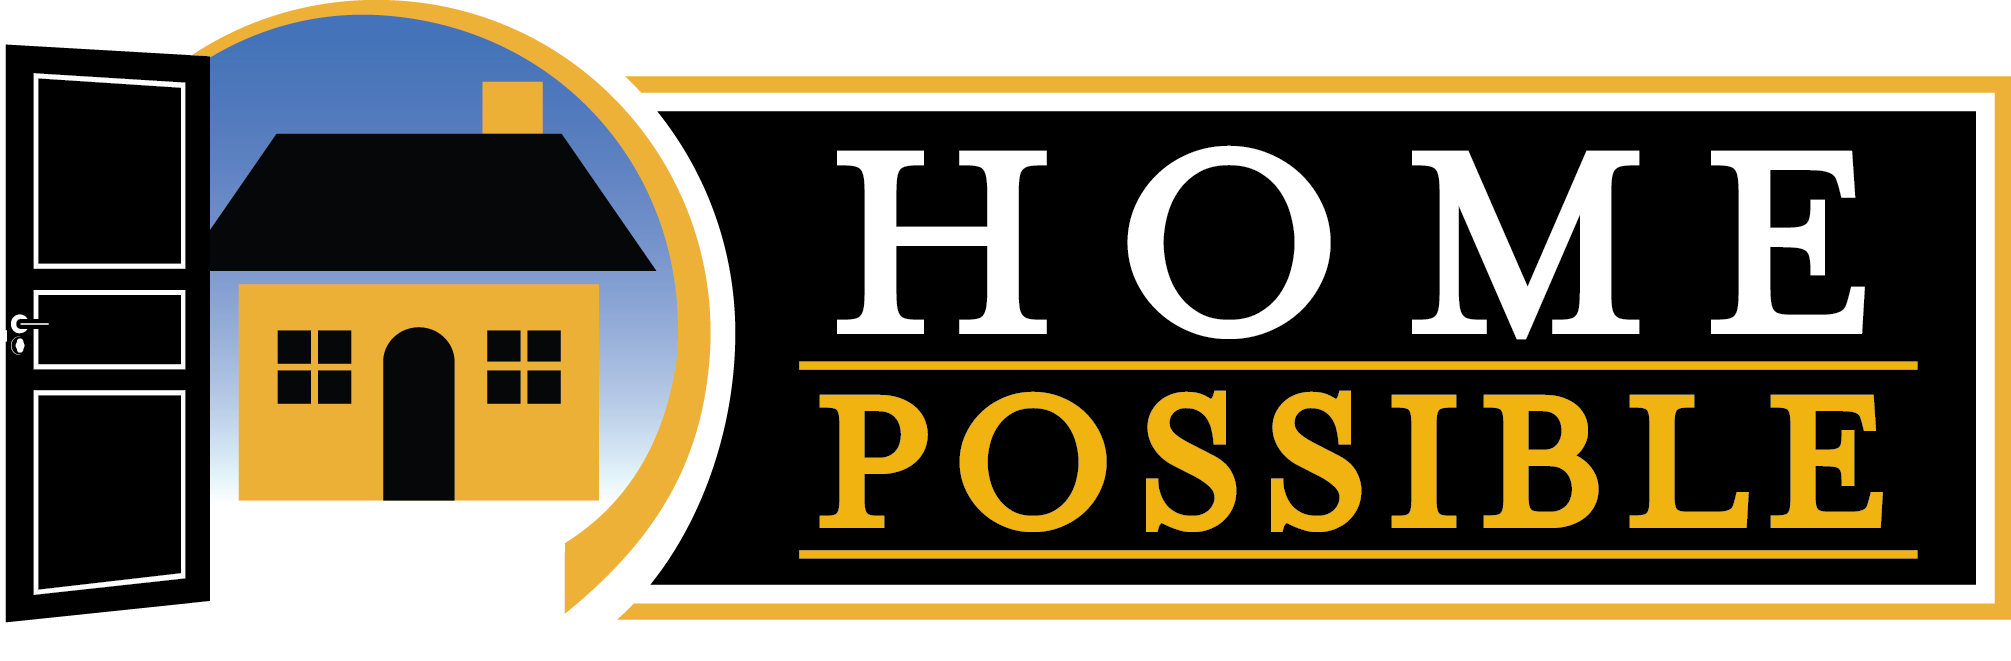 Home_Possible.png